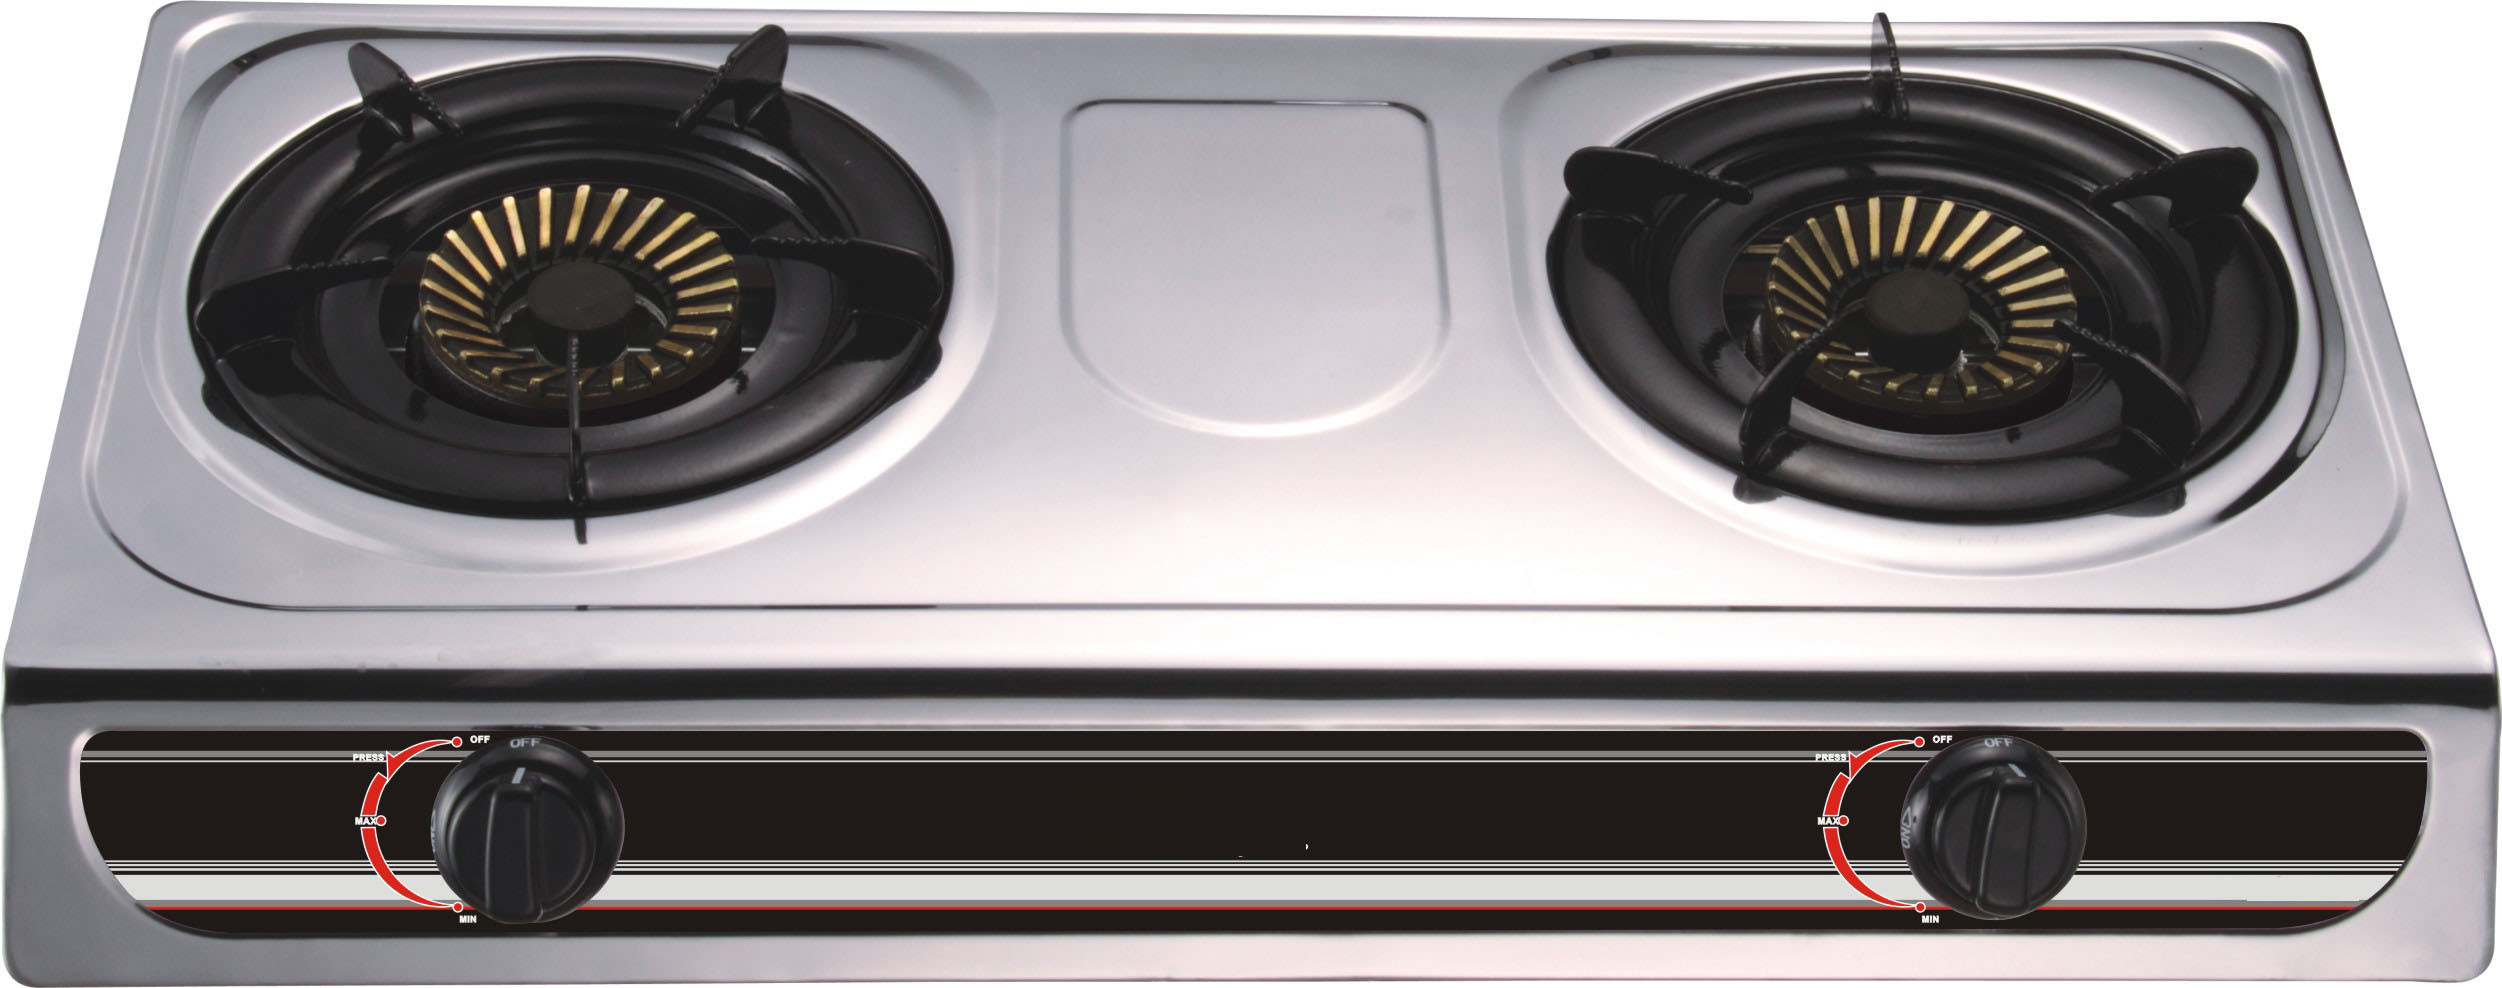 Stainless steel panel 2 Burner Gas Stove